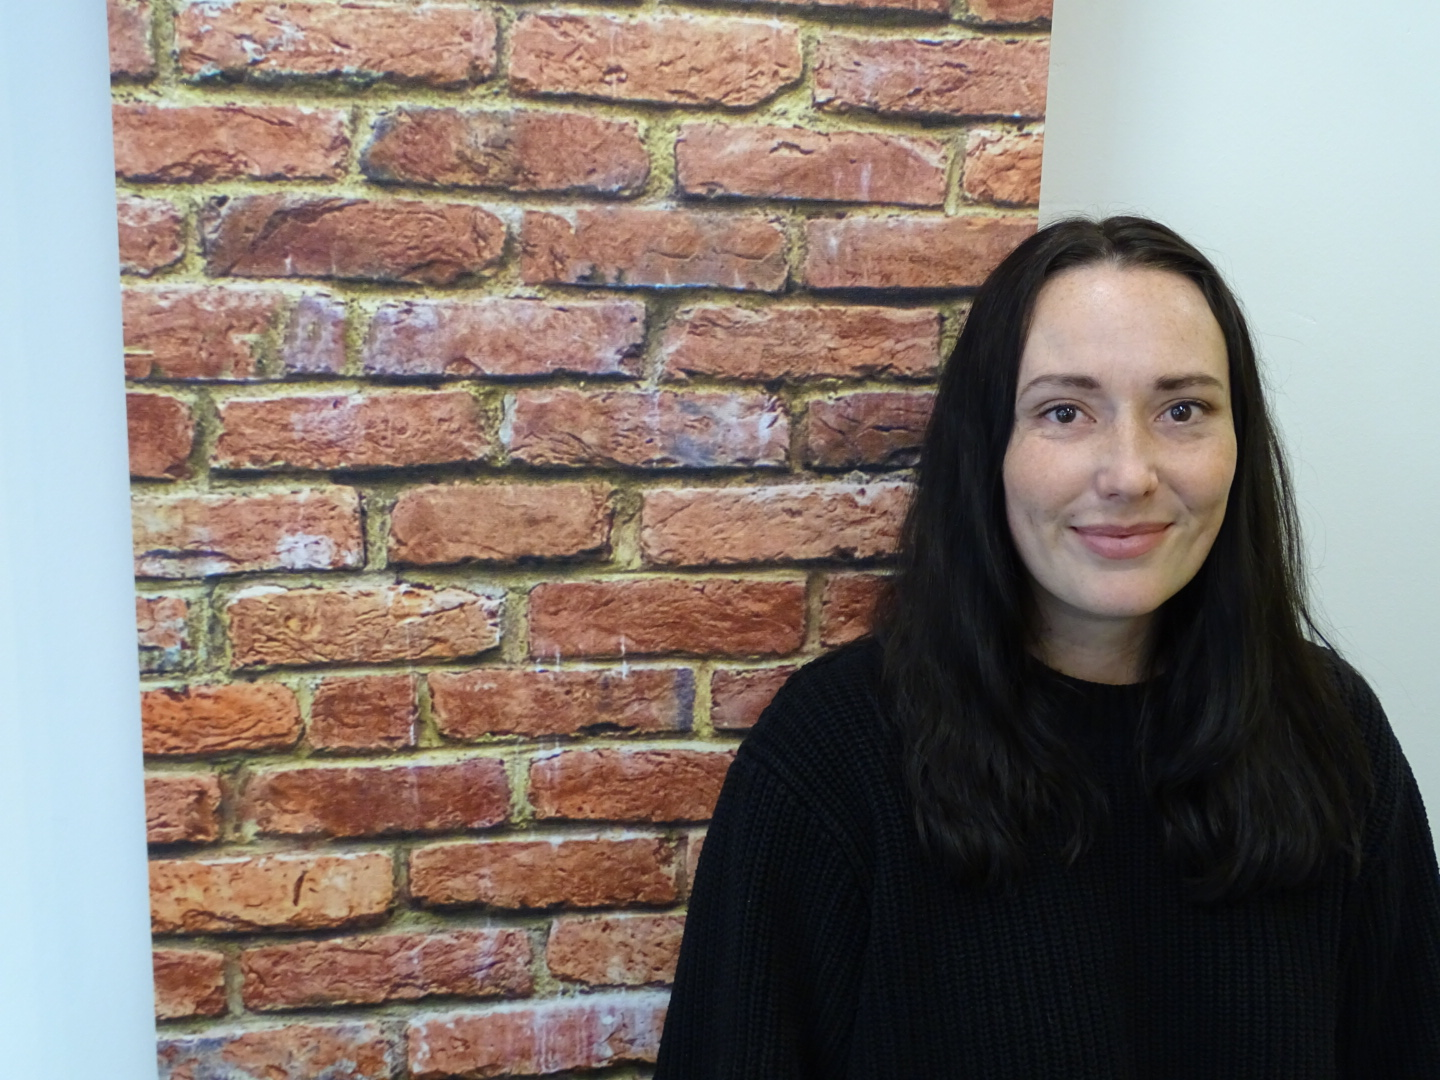 Kitty Allen - part of Women in Tech group and Front End Developer at reed.co.uk